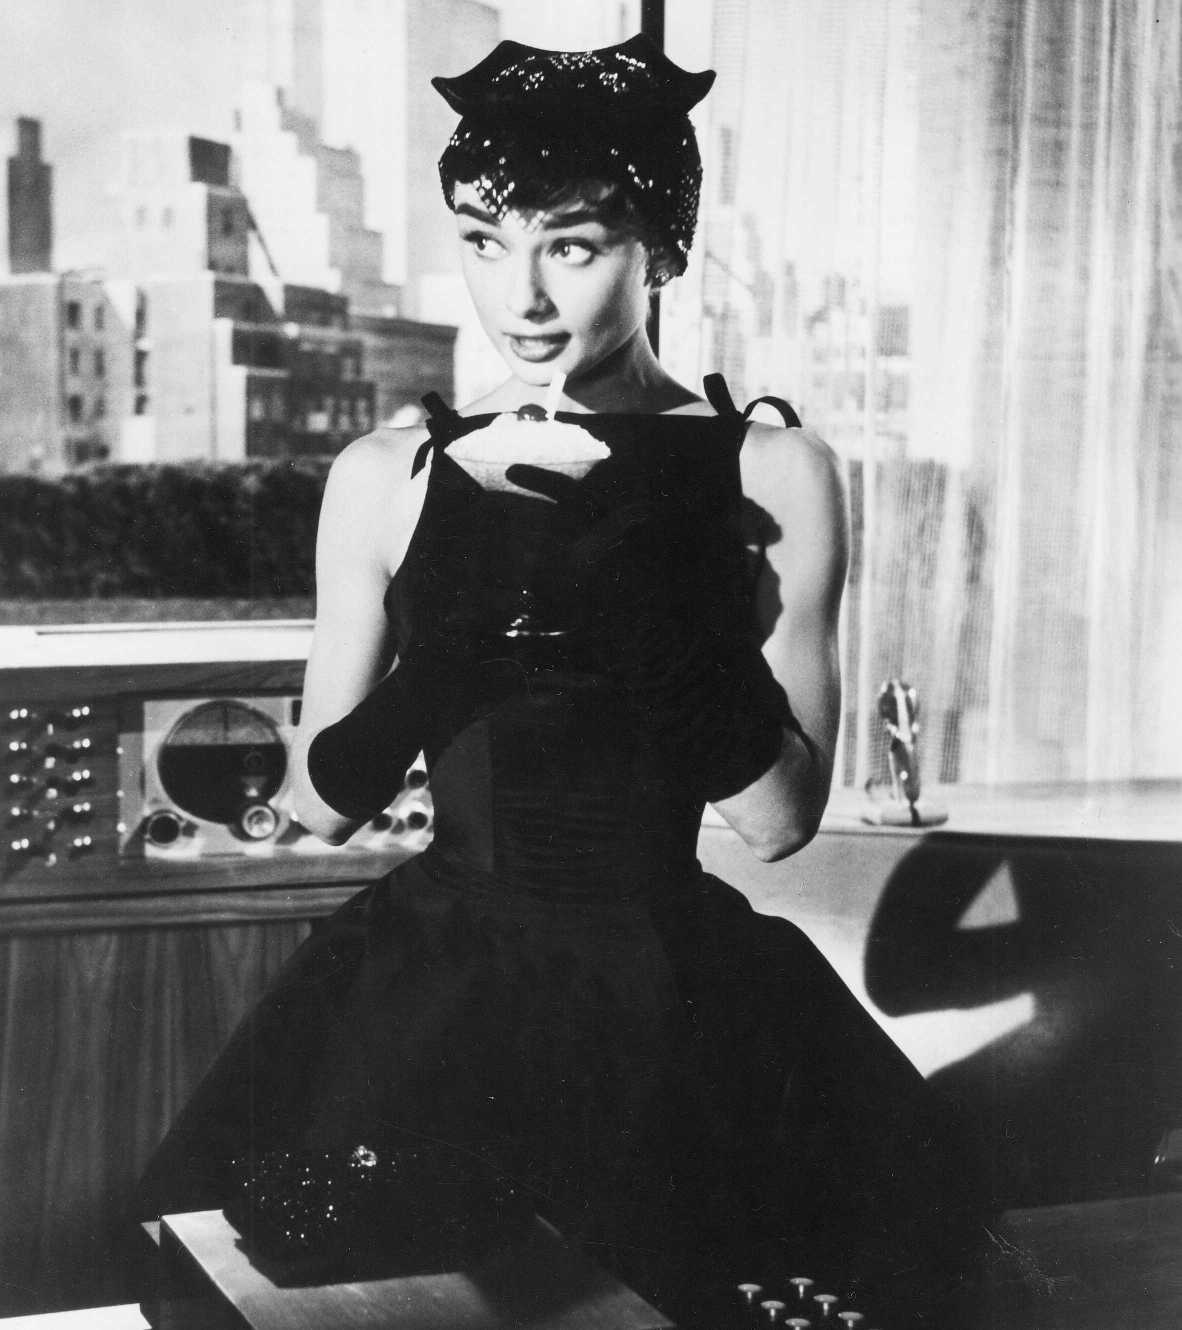 Hubert de Givenchy, the Designer Behind Audrey Hepburn's Little Black Dress, Passes Away at Olivia Bahou. His designs also caught the eye of style icons like First Lady Jackie Kennedy.